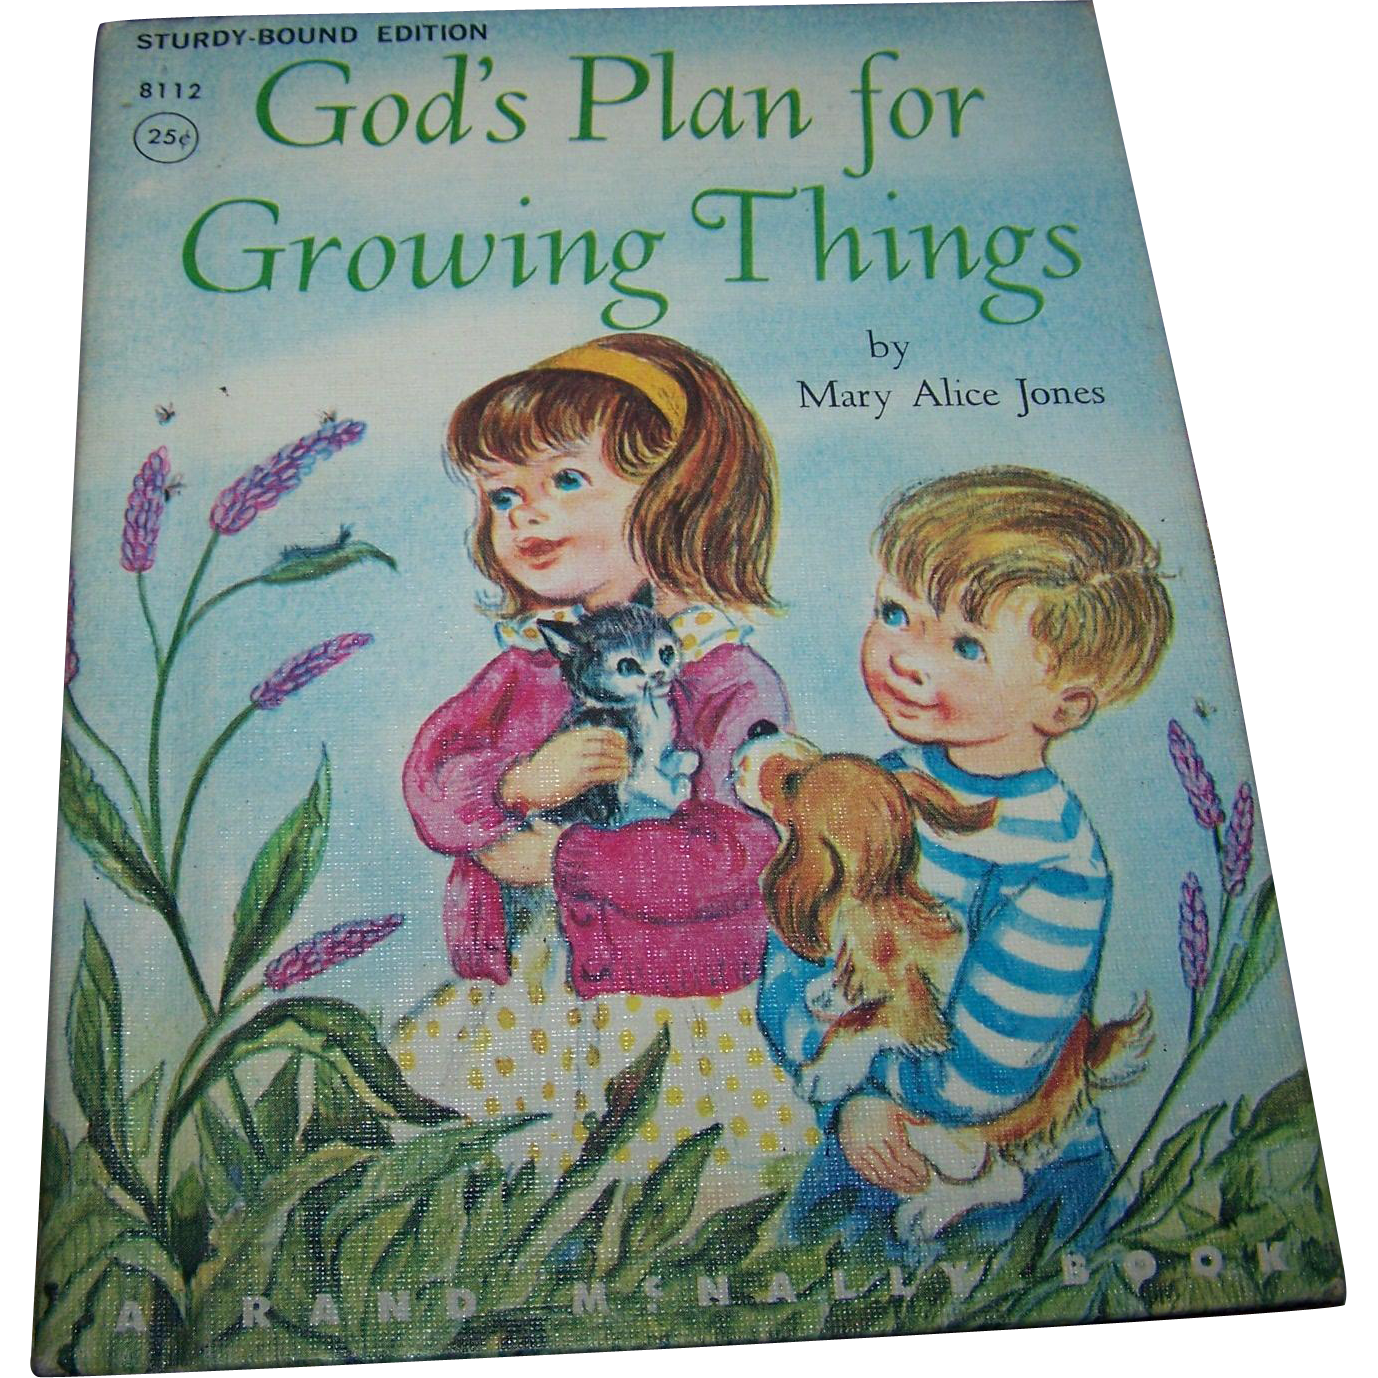 A Sweet Little Children's Book God's Plan for Growing Things by Mary Alice Jones